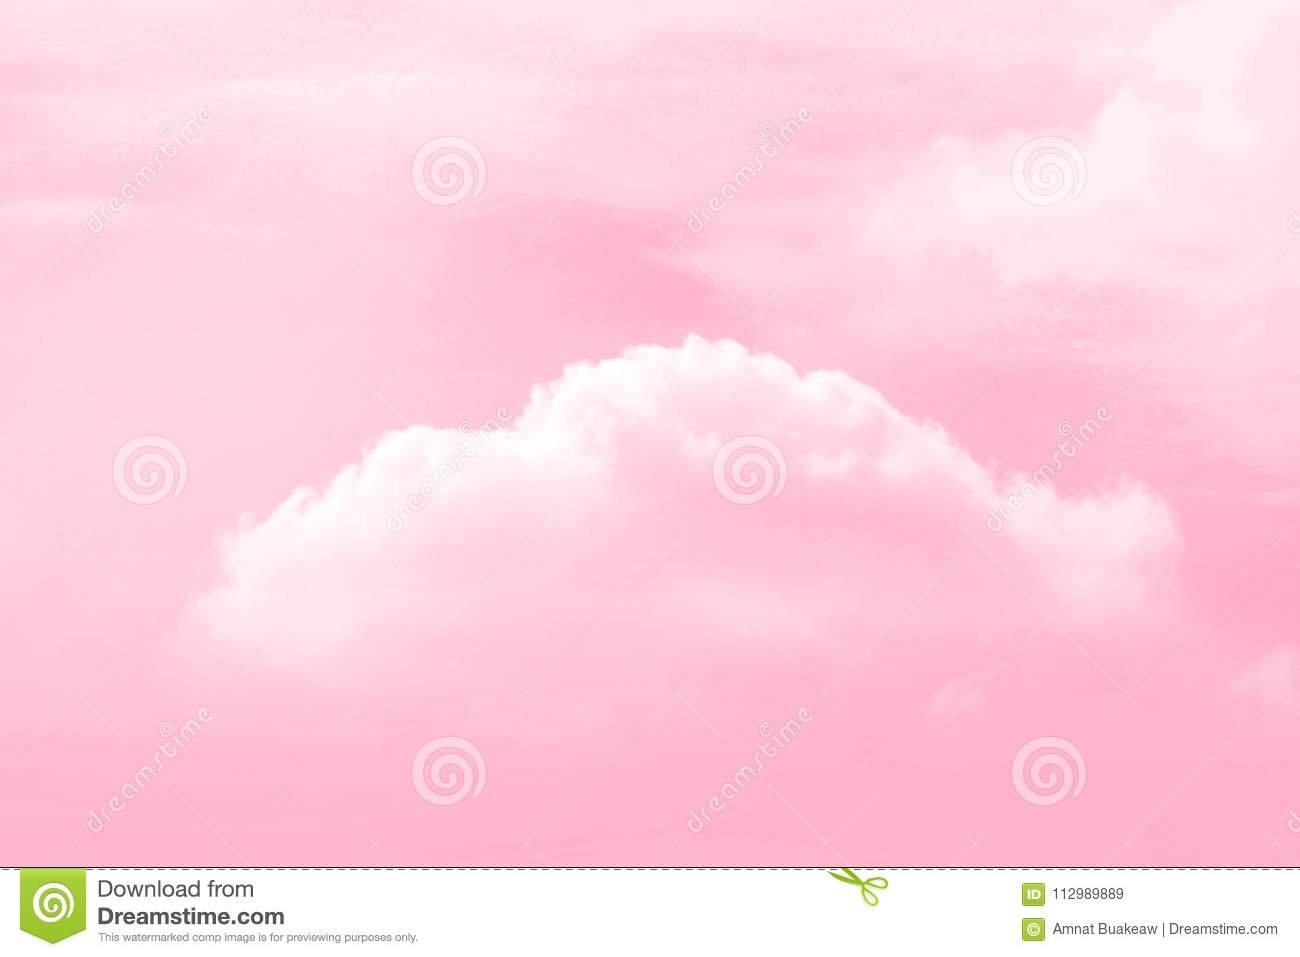 Sky Pink, Sky clouds in love feel color pink background valentine